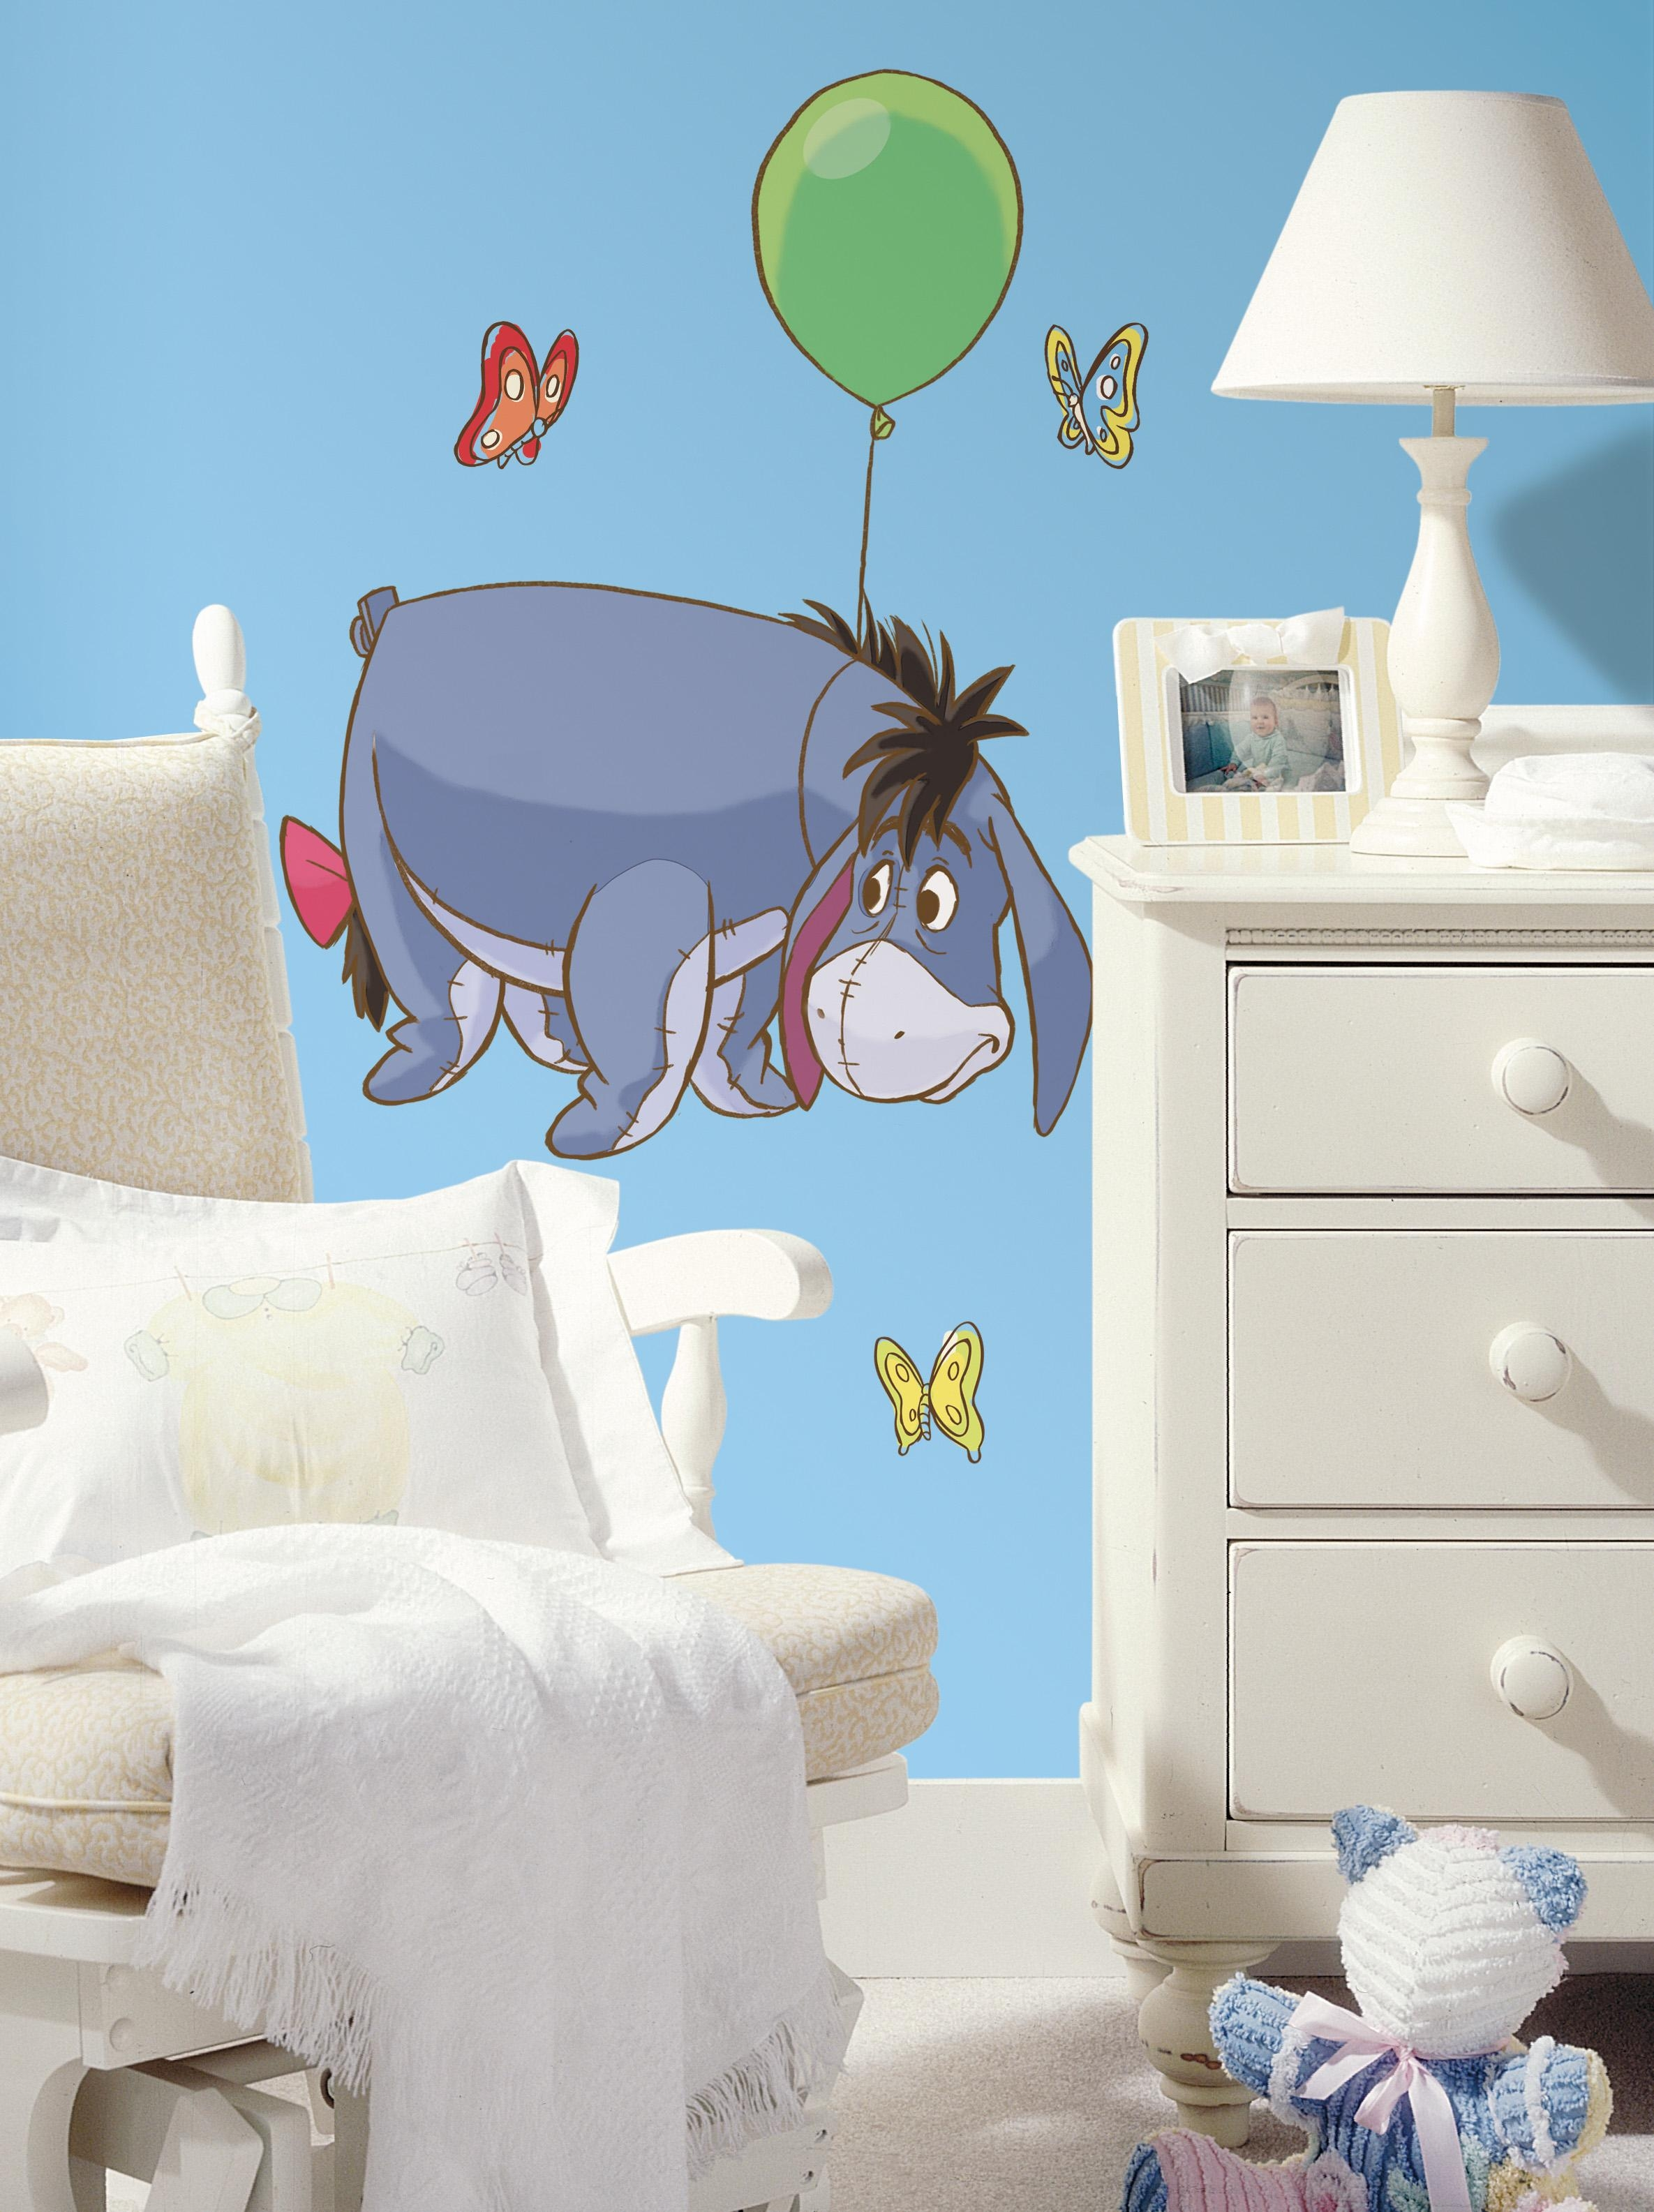 Winnie The Pooh Decor | Colorful Kids Rooms Intended For Winnie The Pooh Wall Decor (View 15 of 20)